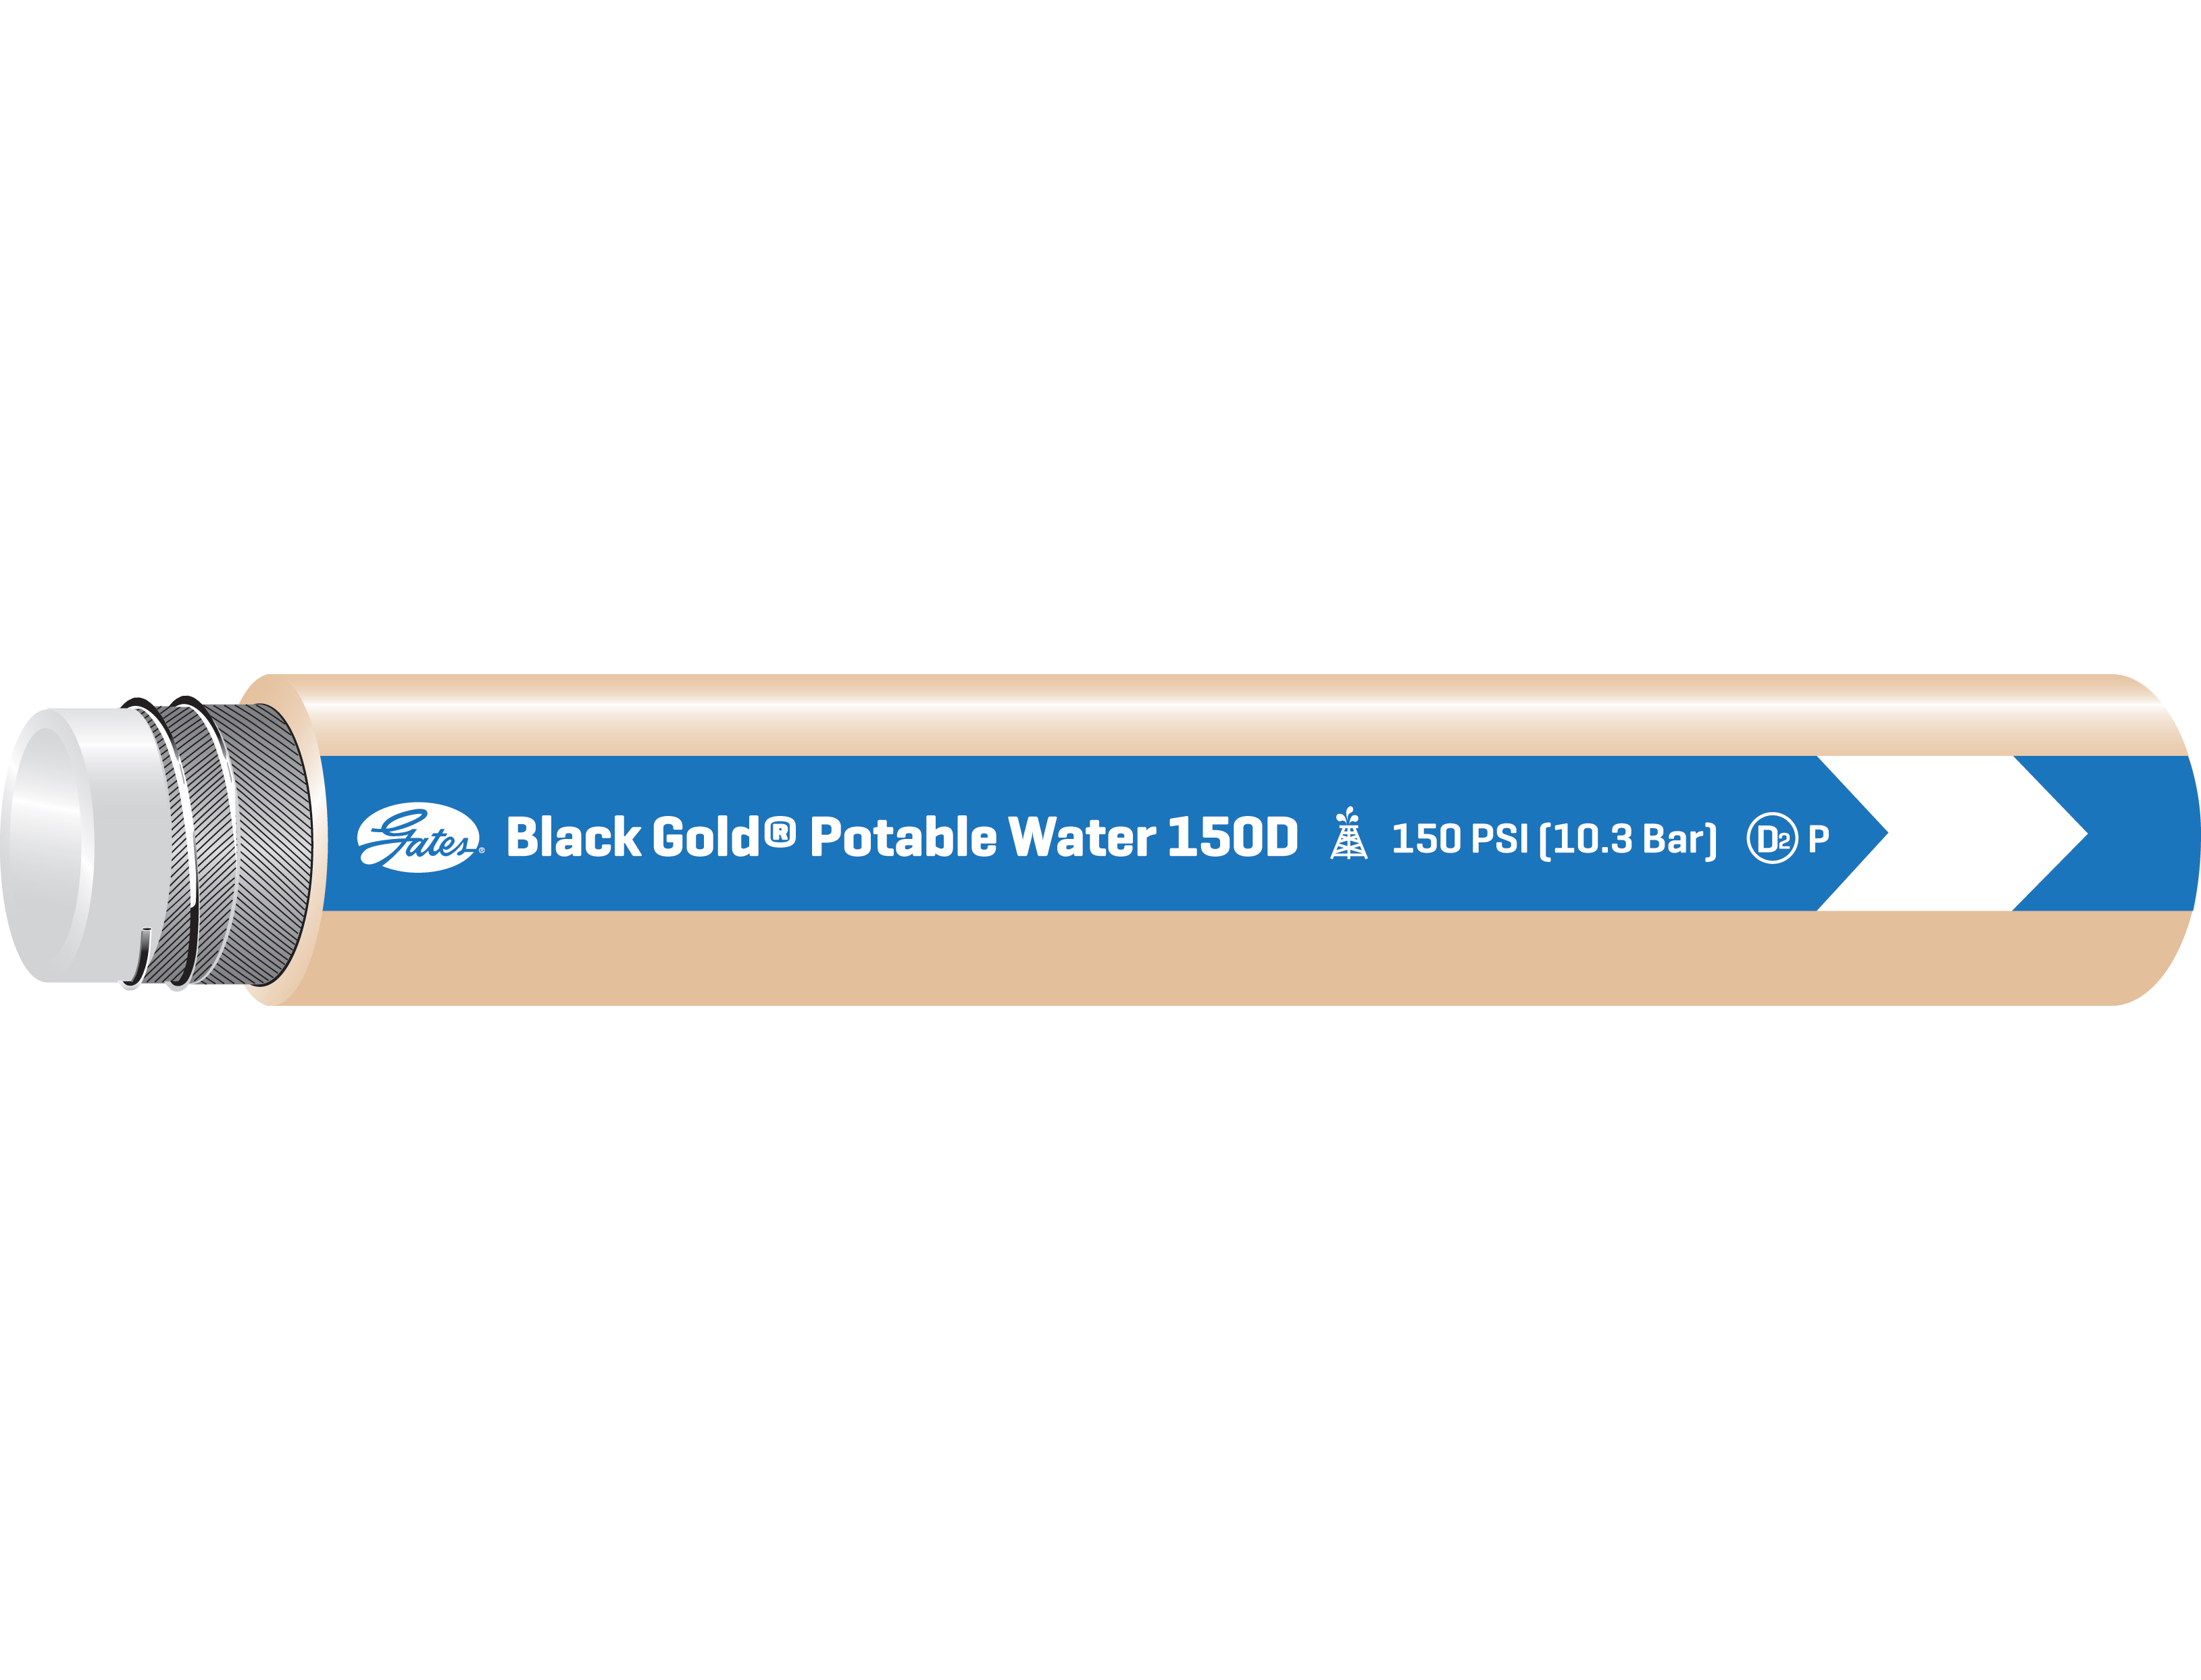 Food Master Potable Water (150-300)D Transfer Hose